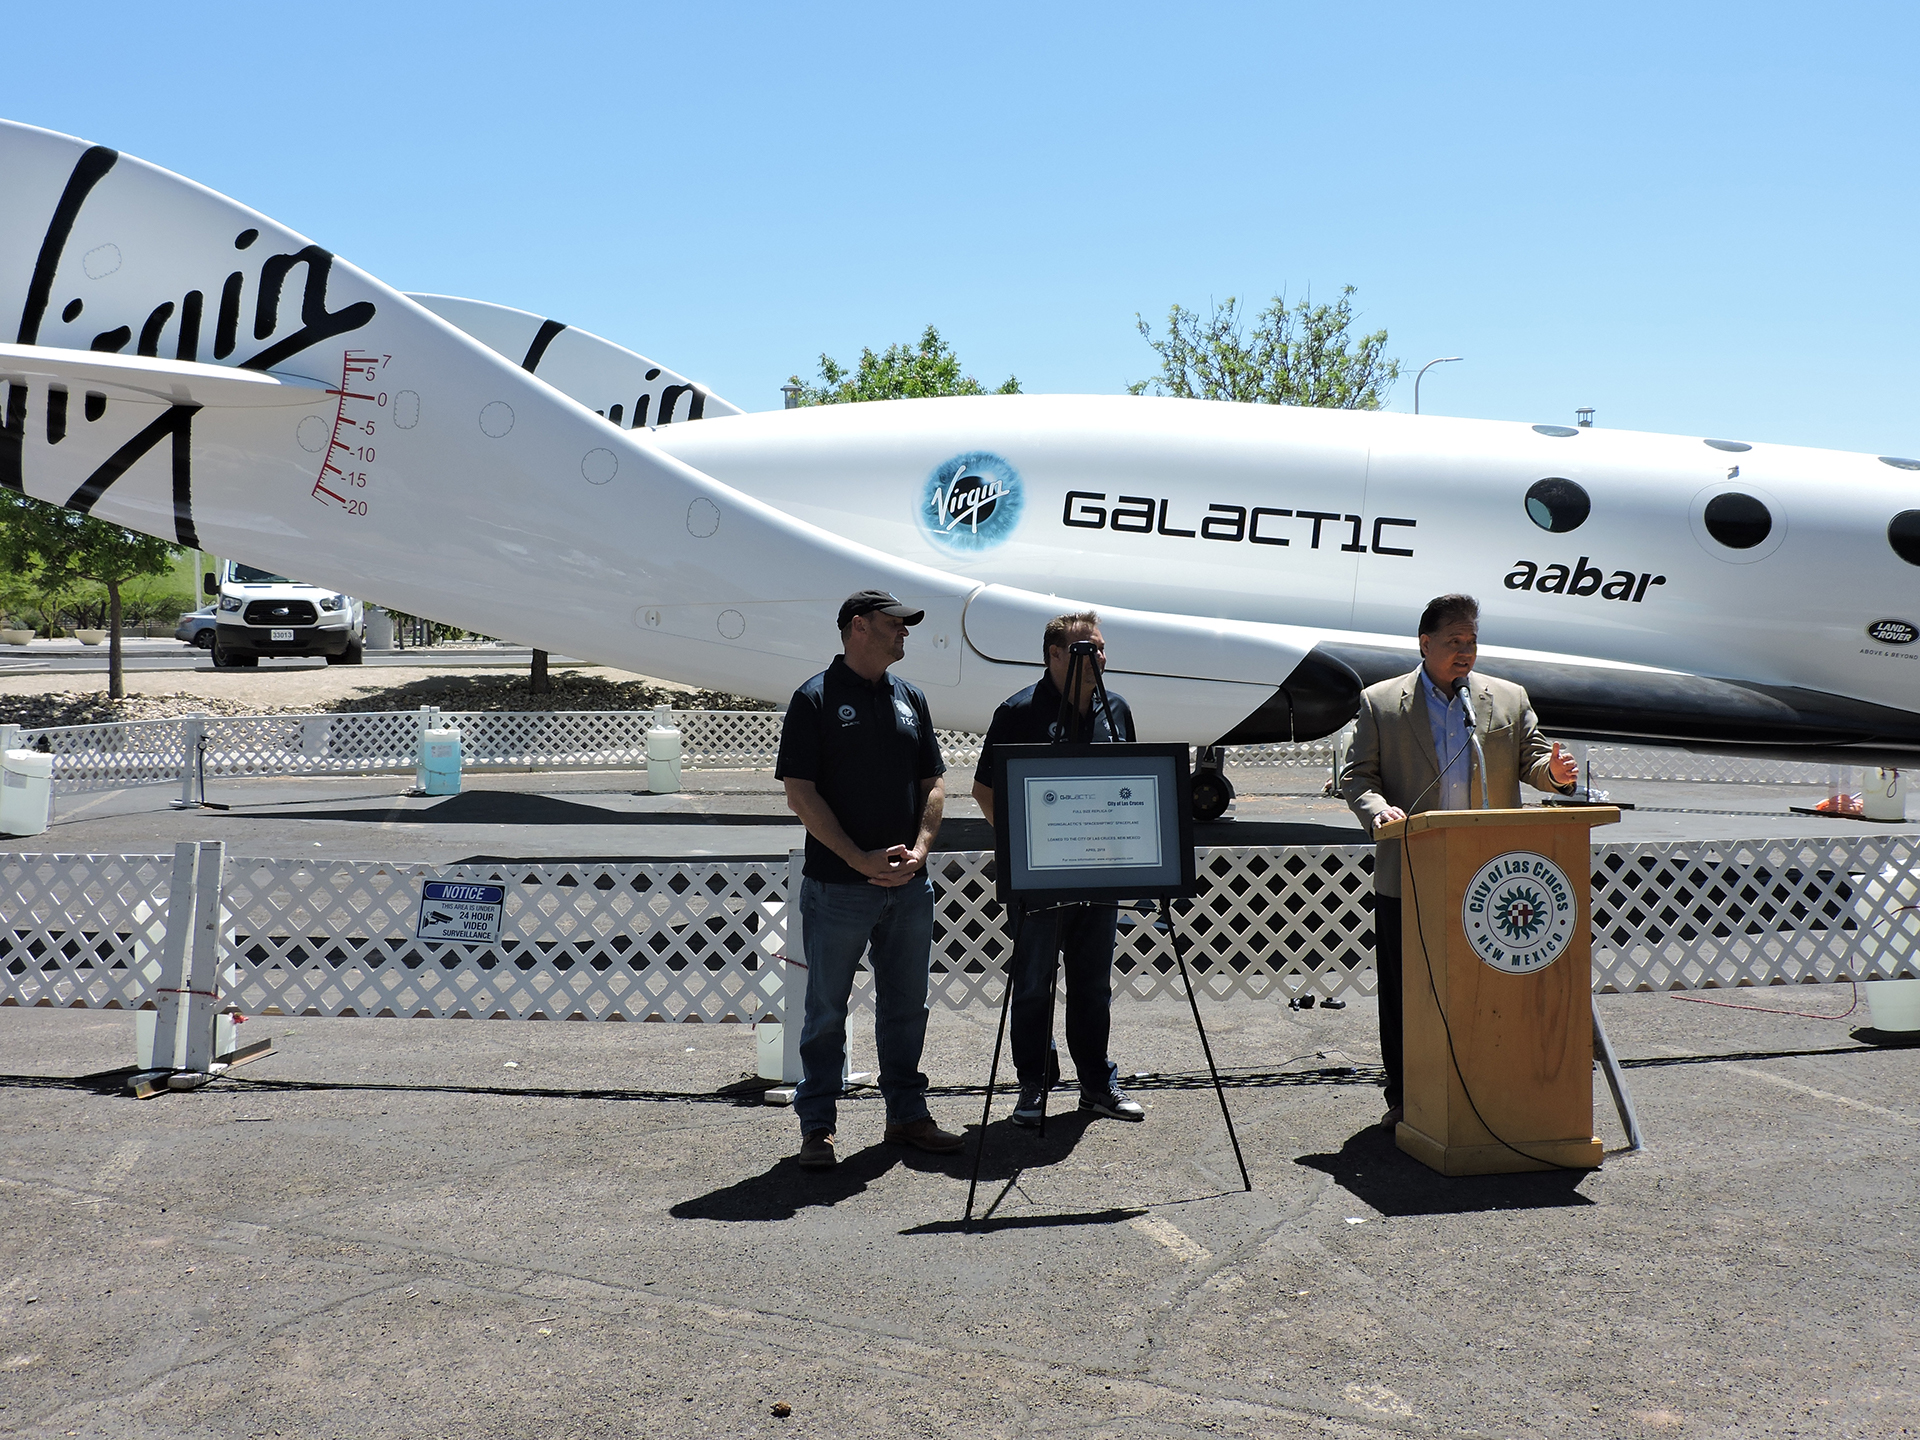 Las Cruces Mayor at ceremony for Replica Virgin Galactic Spaceship at Las Cruces Space Festival